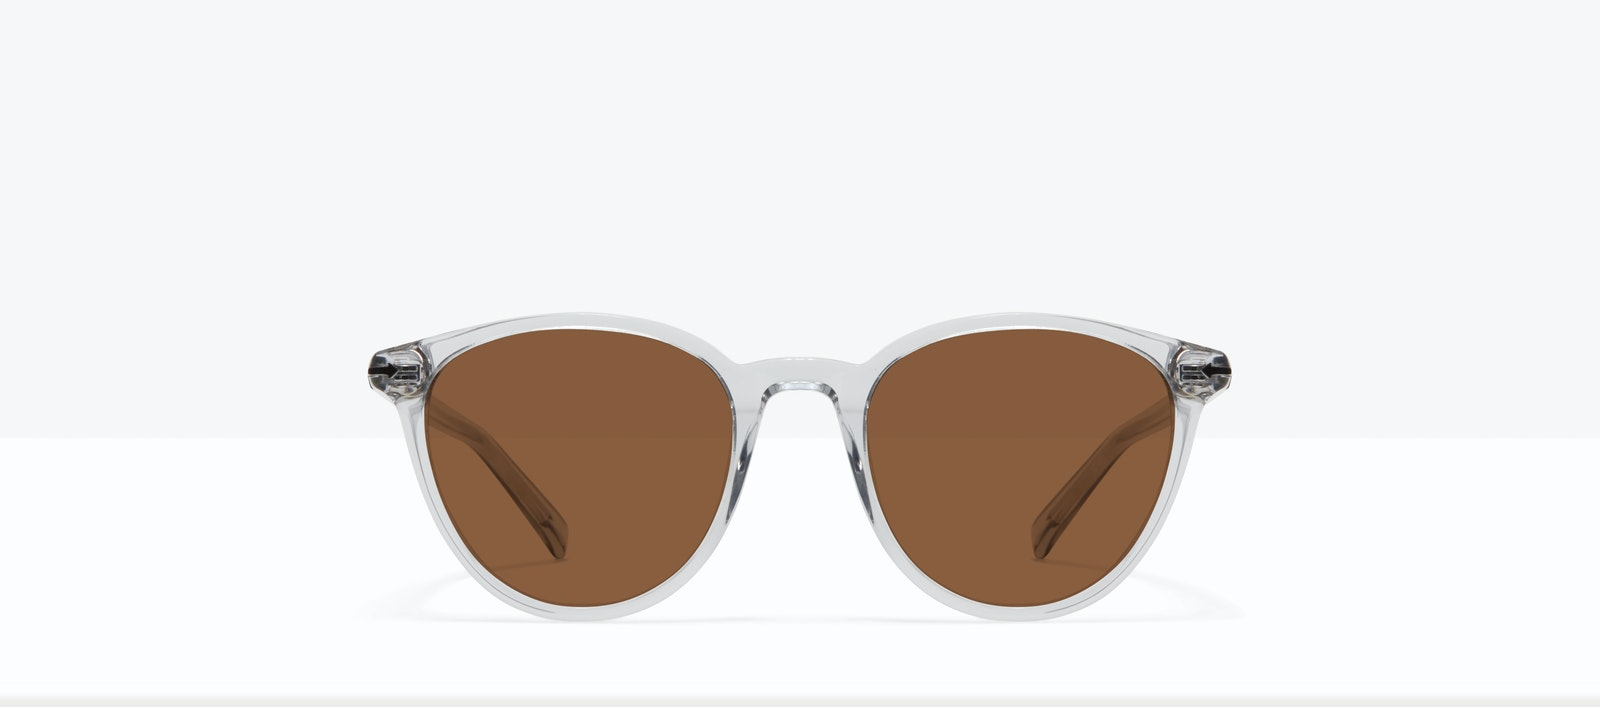 Affordable Fashion Glasses Round Sunglasses Women London Taupe Front